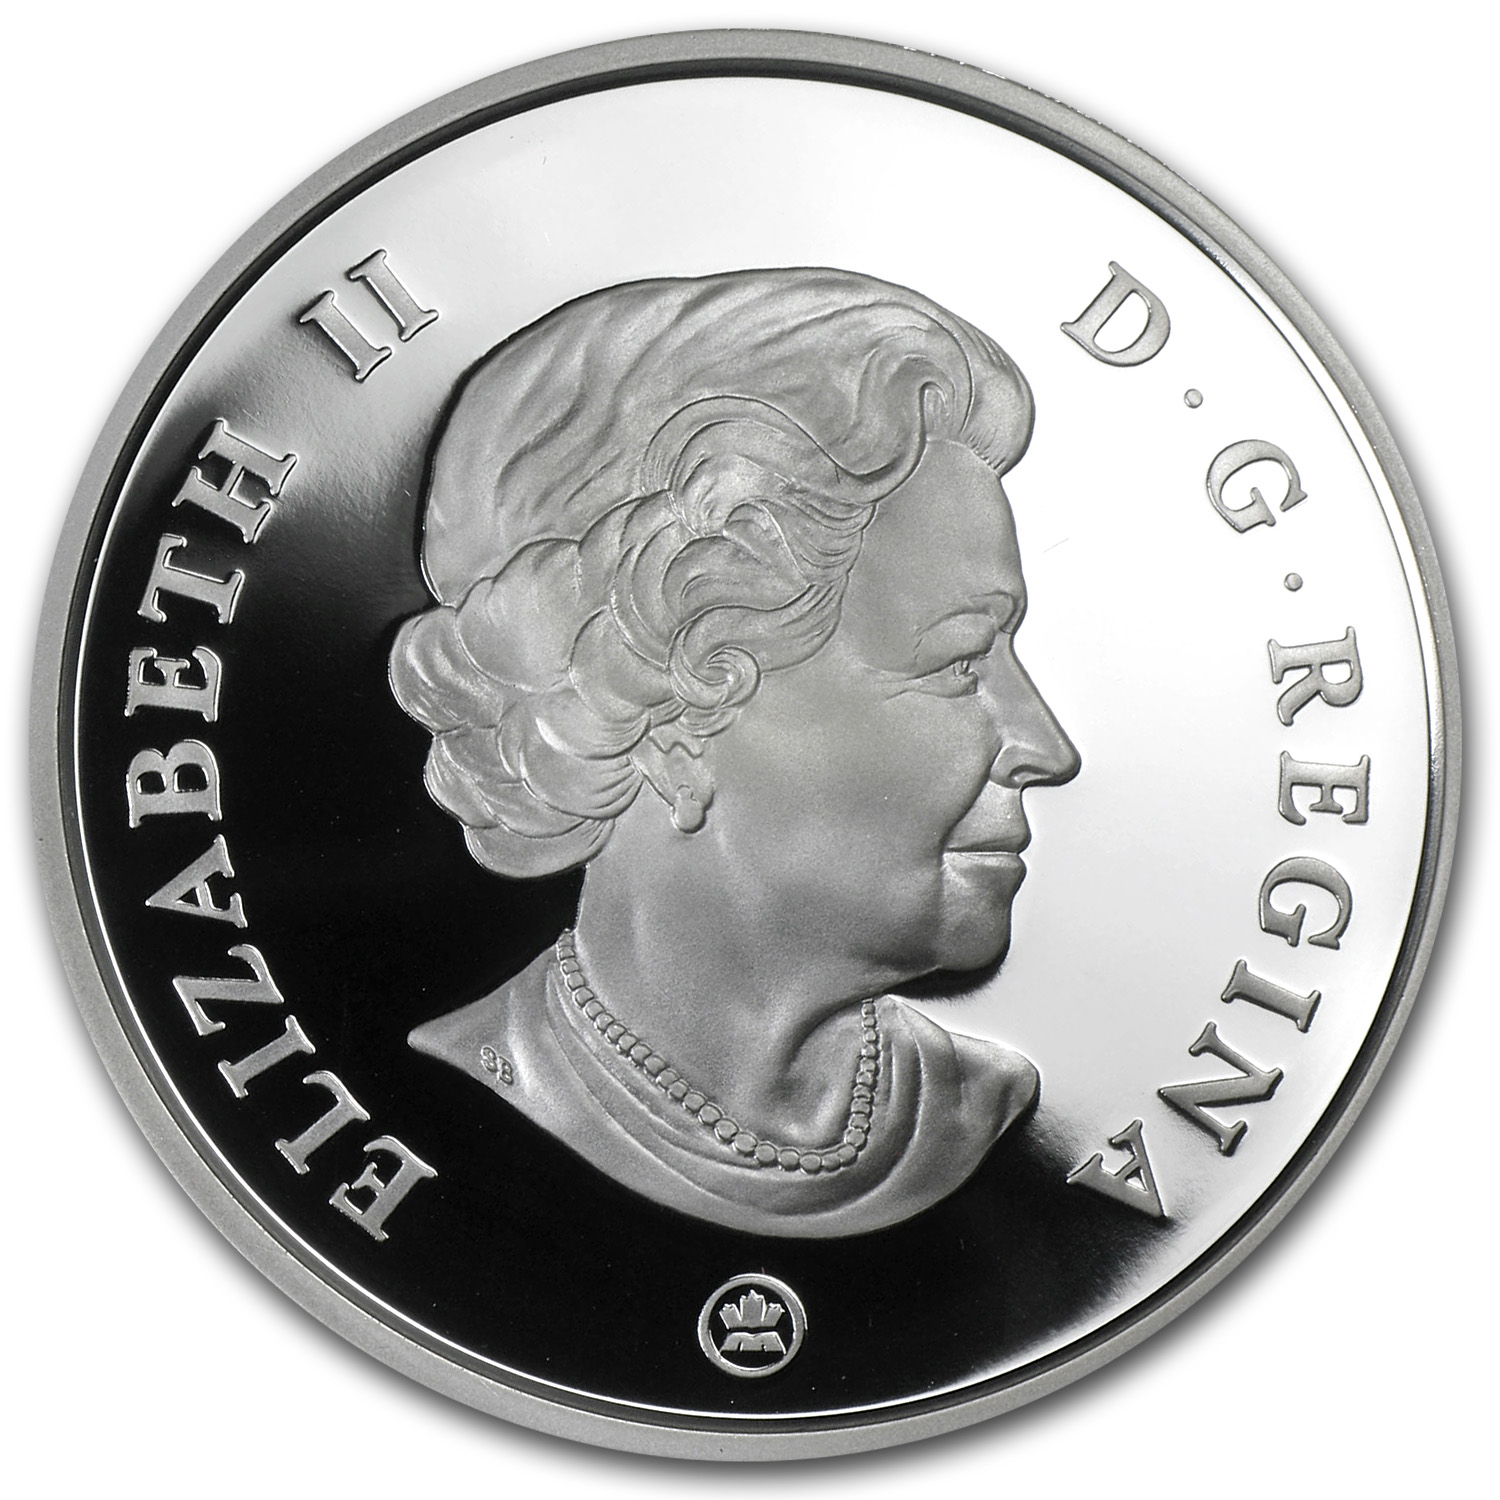 2009 Canada 1 oz Silver Vignettes of Royalty (UHR)